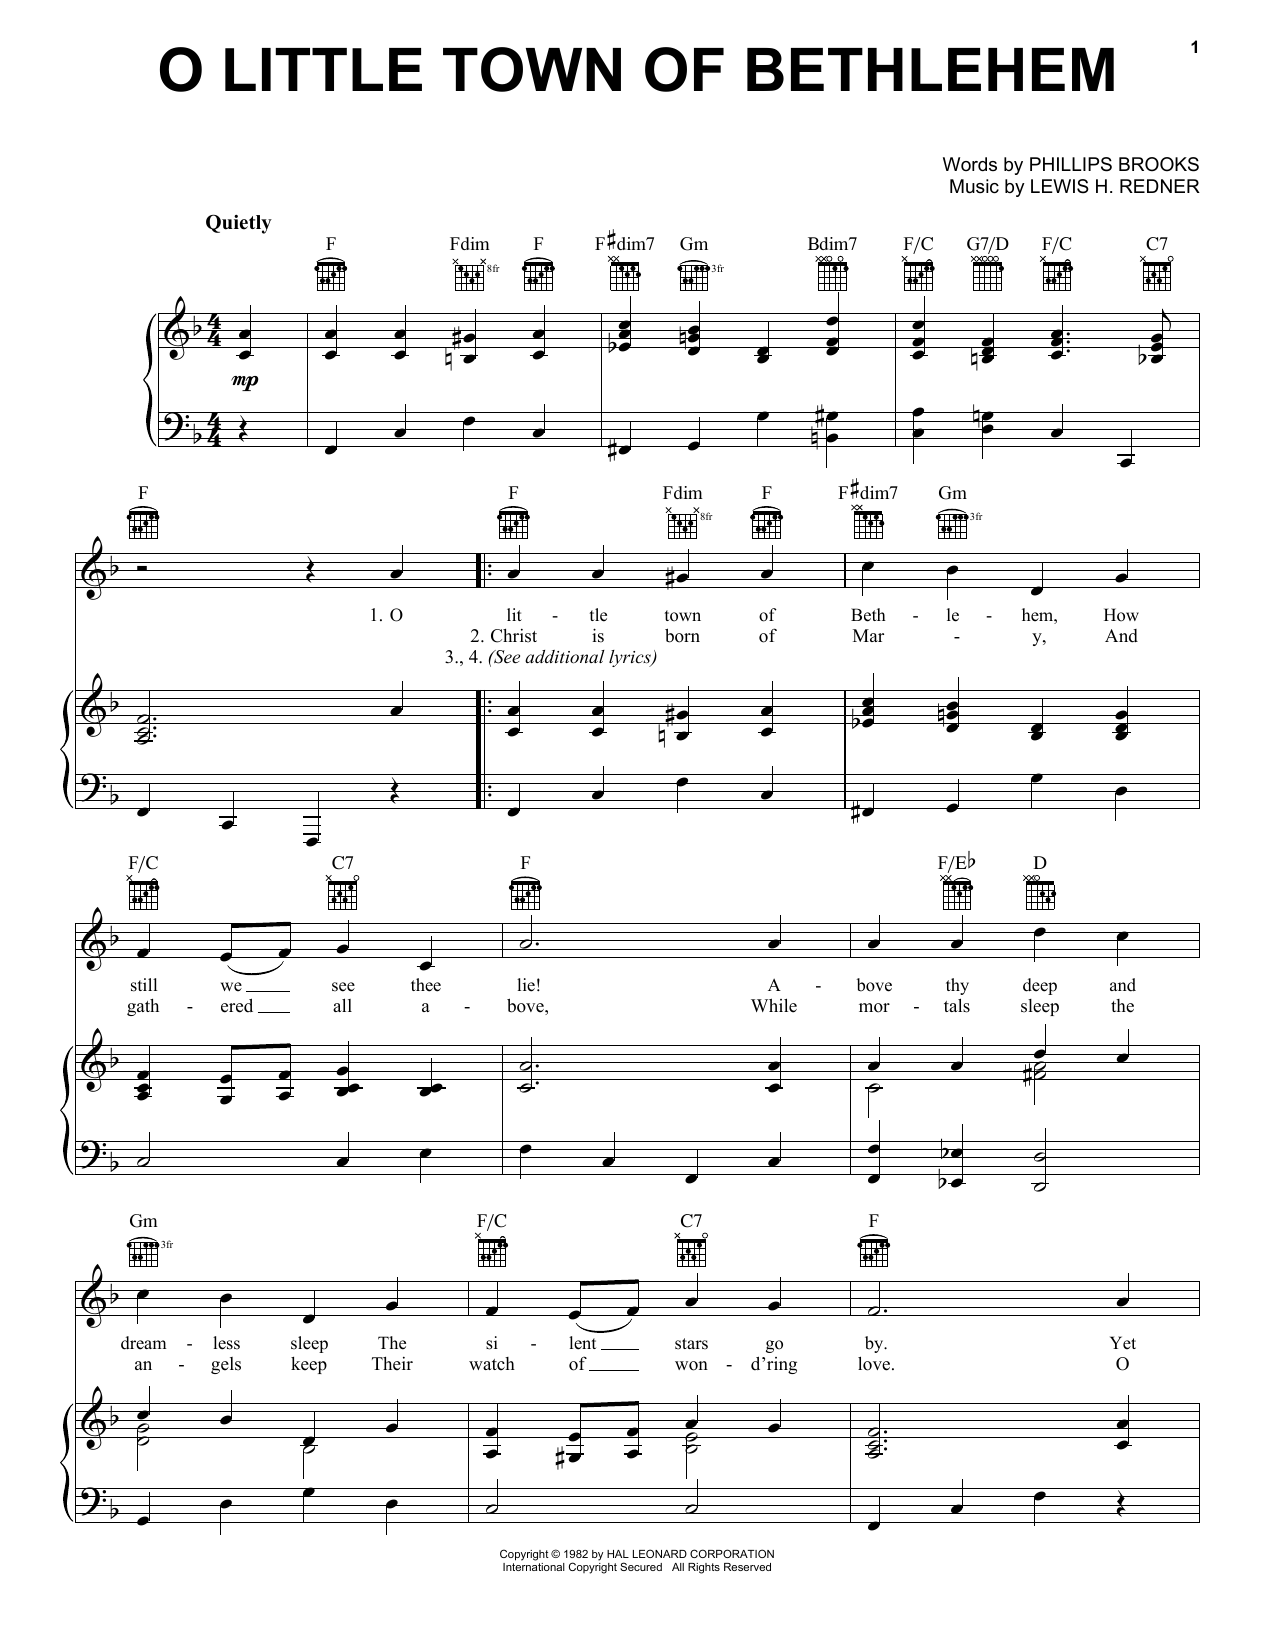 Phillips Brooks O Little Town Of Bethlehem sheet music notes and chords. Download Printable PDF.